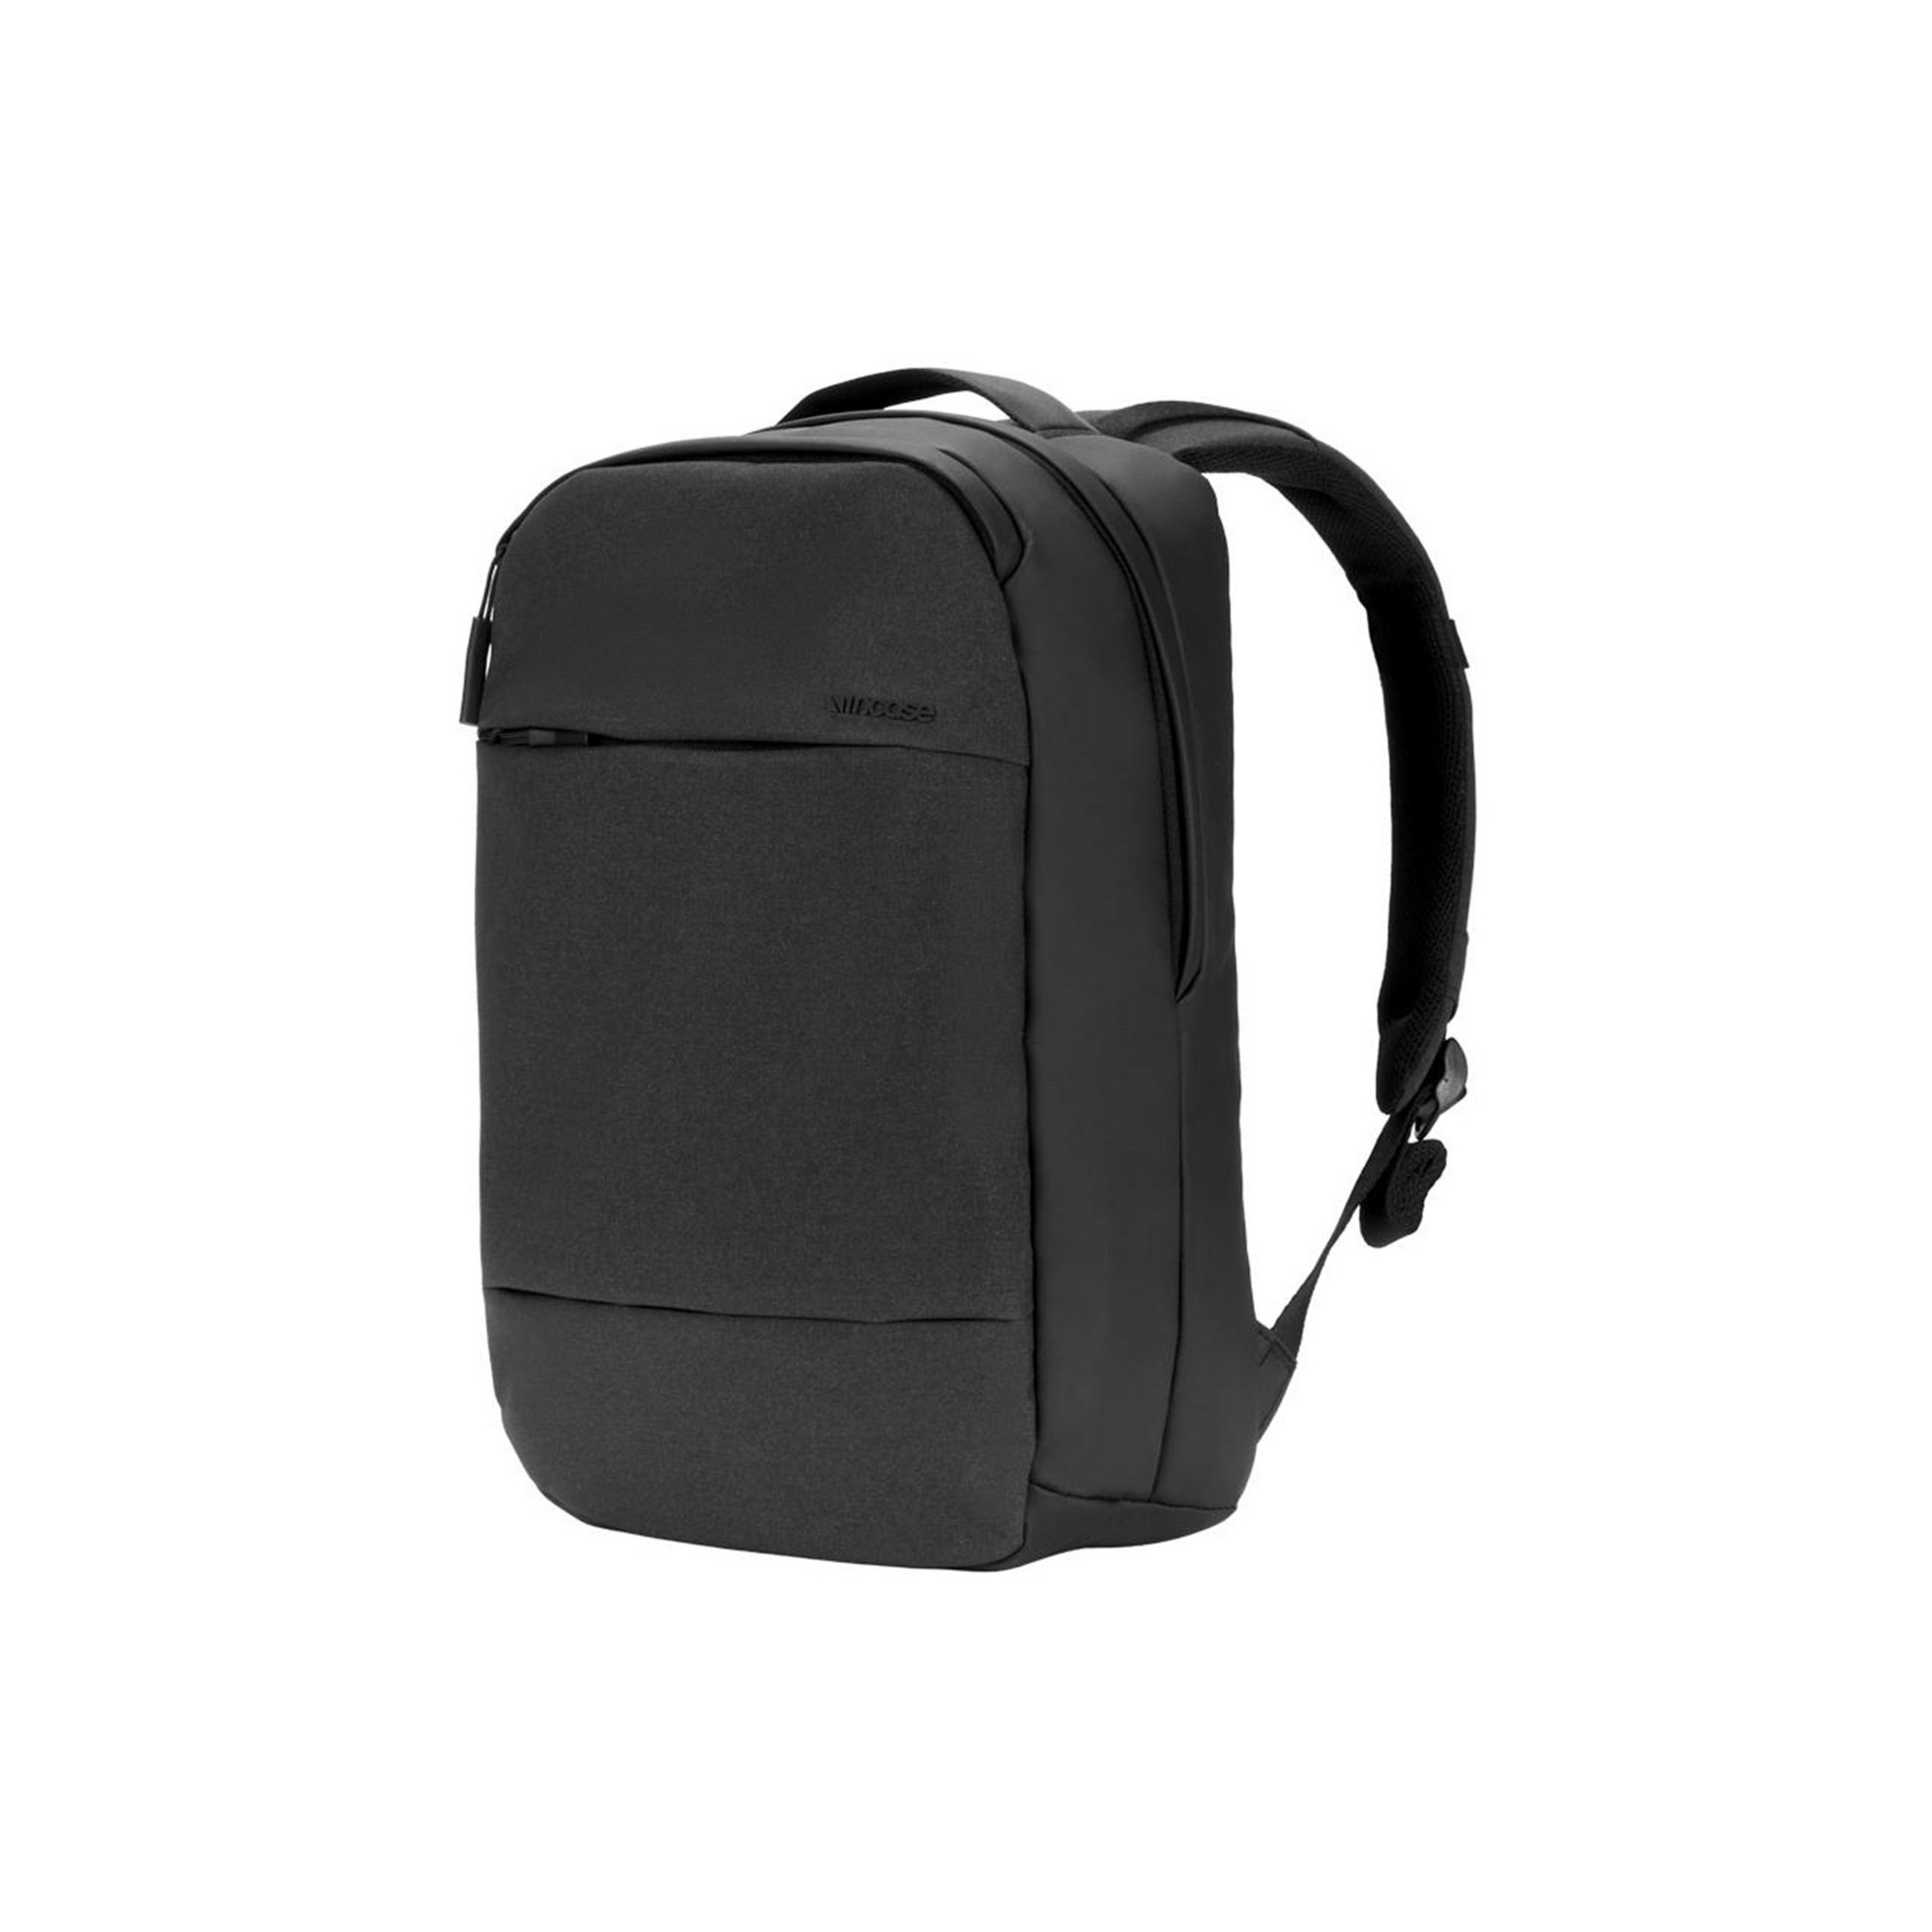 Image of Incase City Compact 15 Inch Black Laptop Backpack